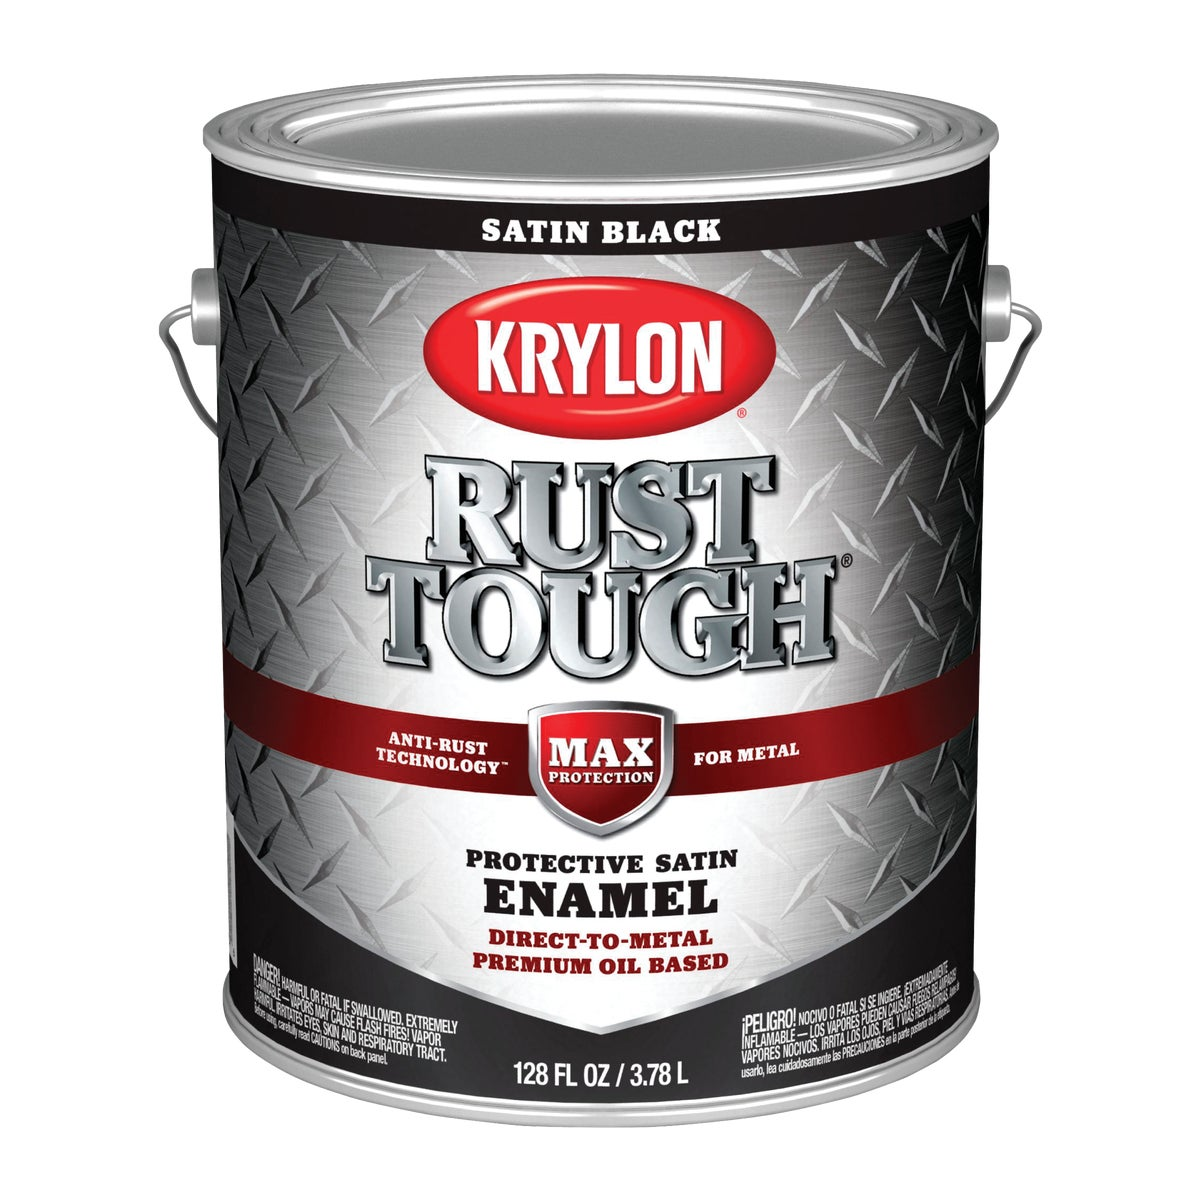 SATIN BLACK RUST ENAMEL - 044.0021825.007 by Valspar Corp